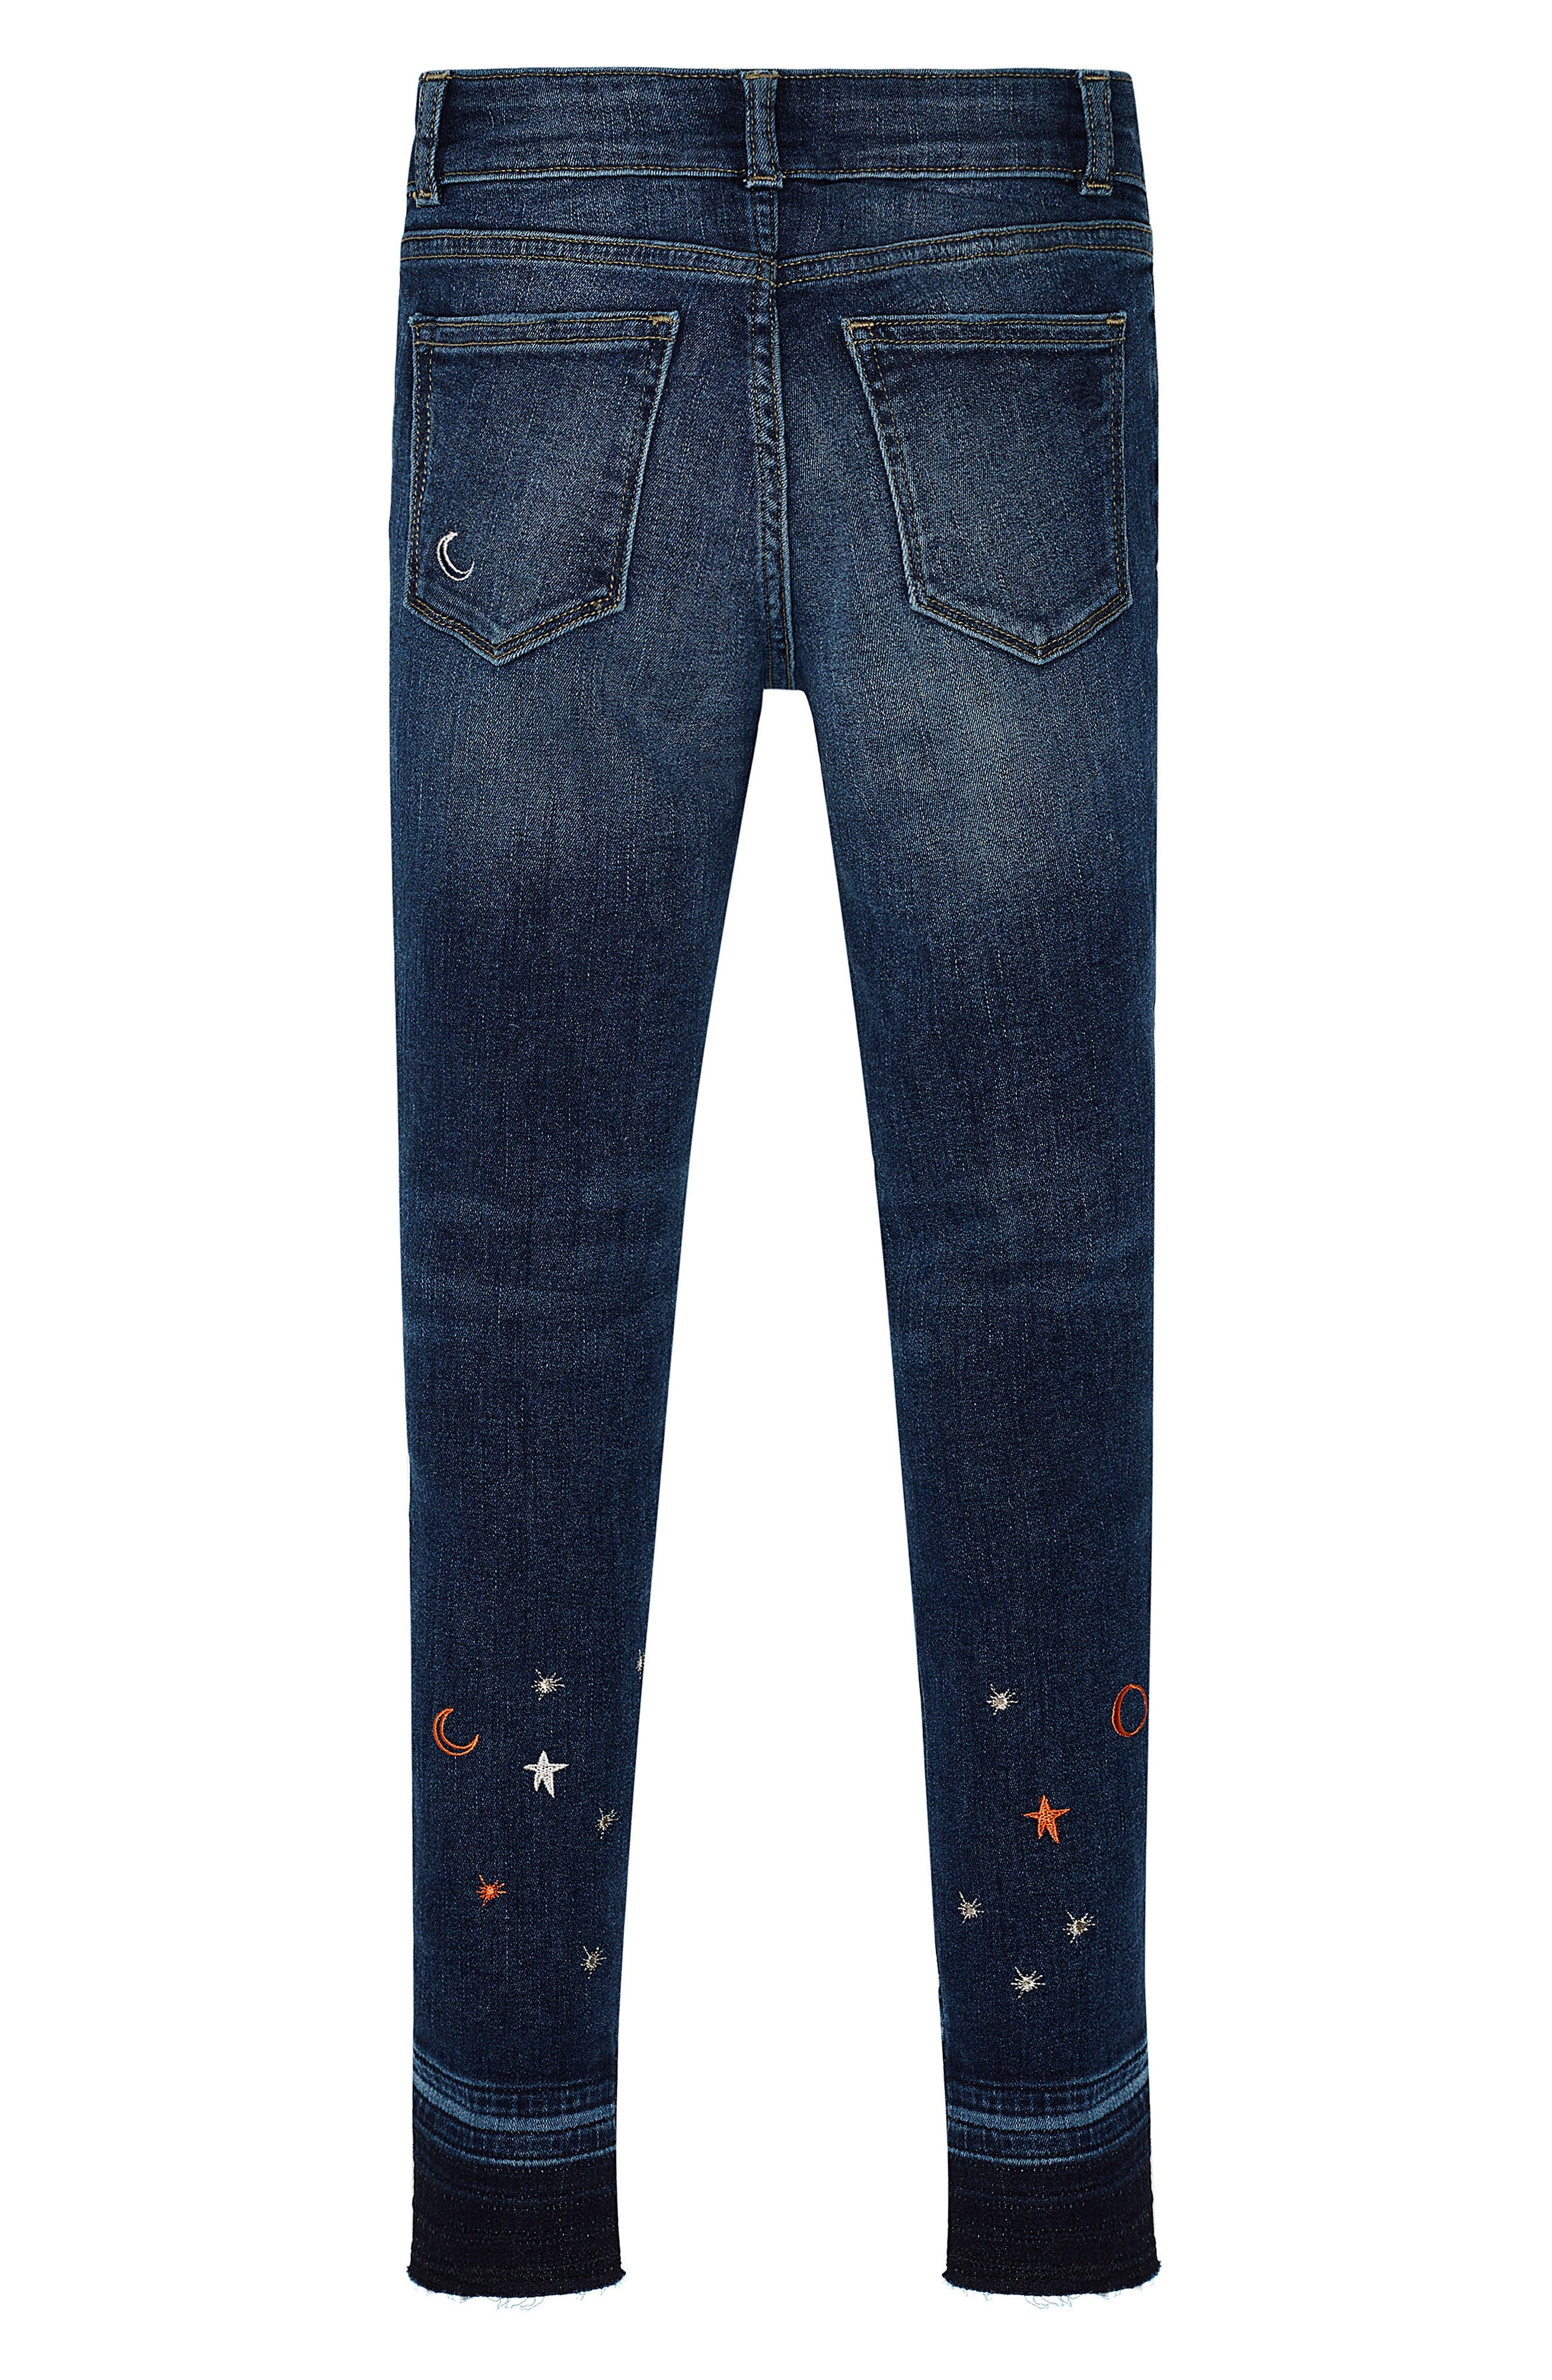 Chloe Galaxy Embroidered Skinny Jeans,                             Alternate thumbnail 2, color,